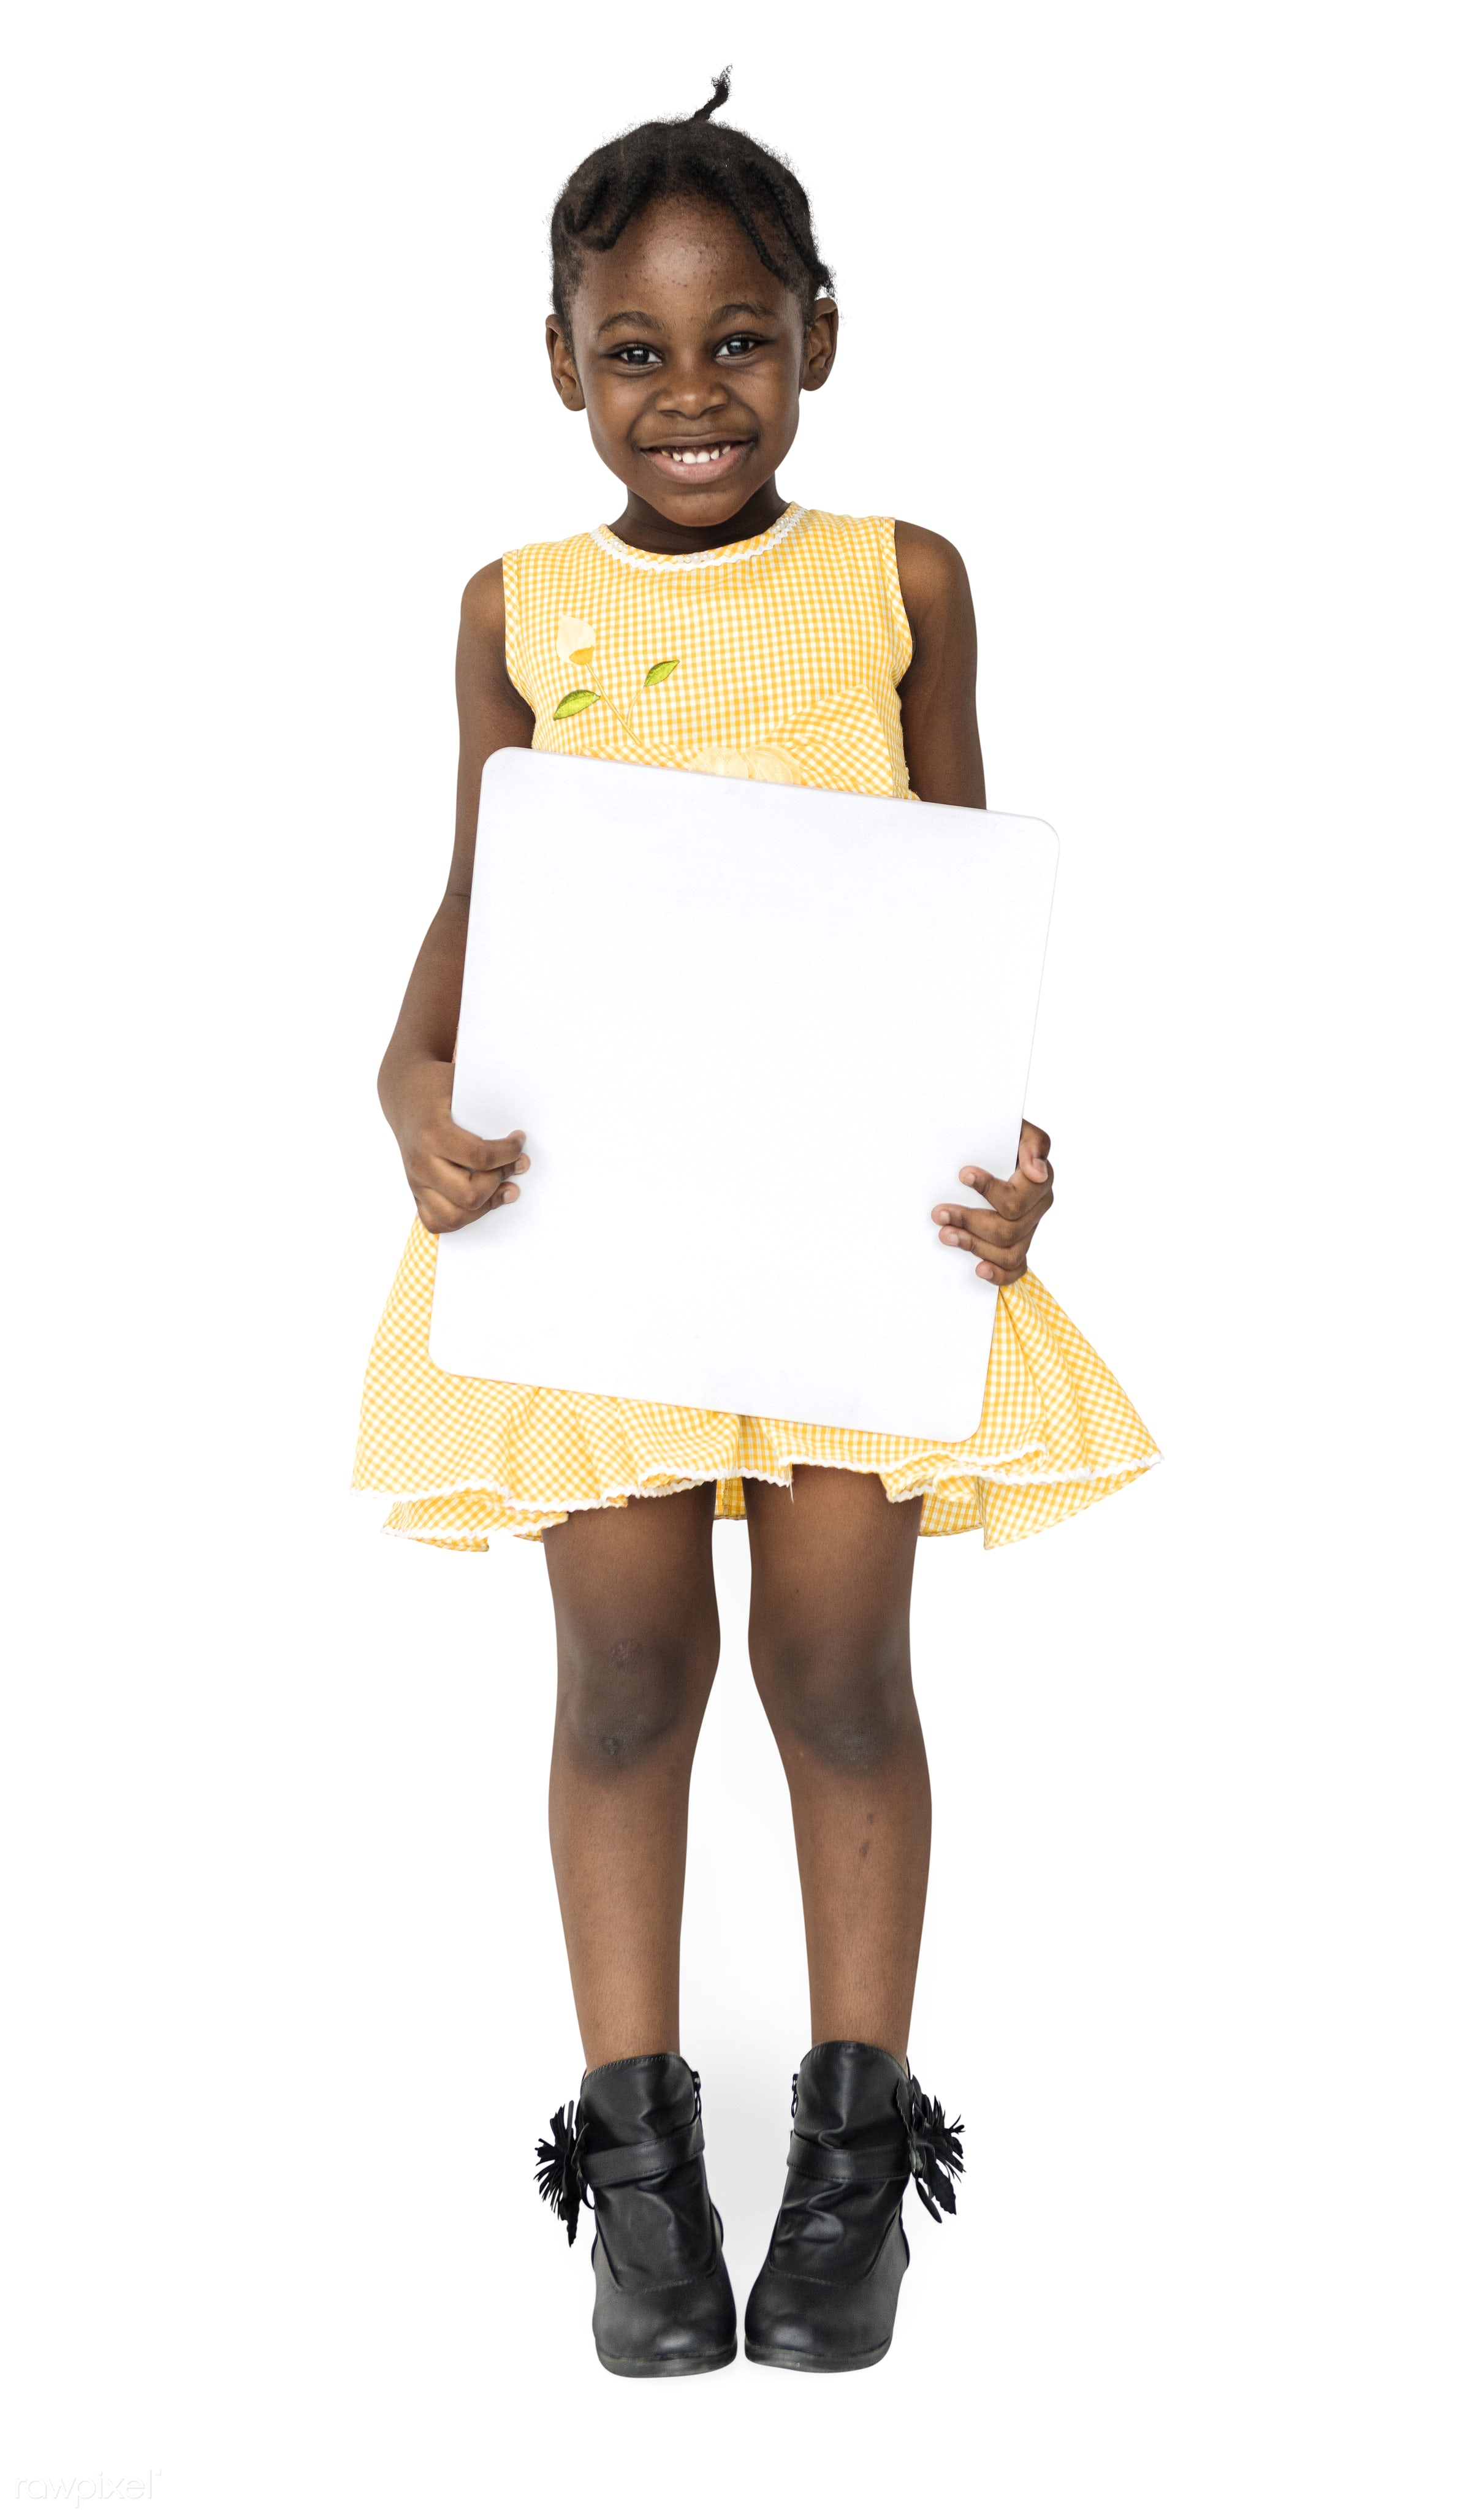 adorable, african descent, background, banner, blank, charming, cheerful, child, childhood, copy space, cute, girl, isolated...